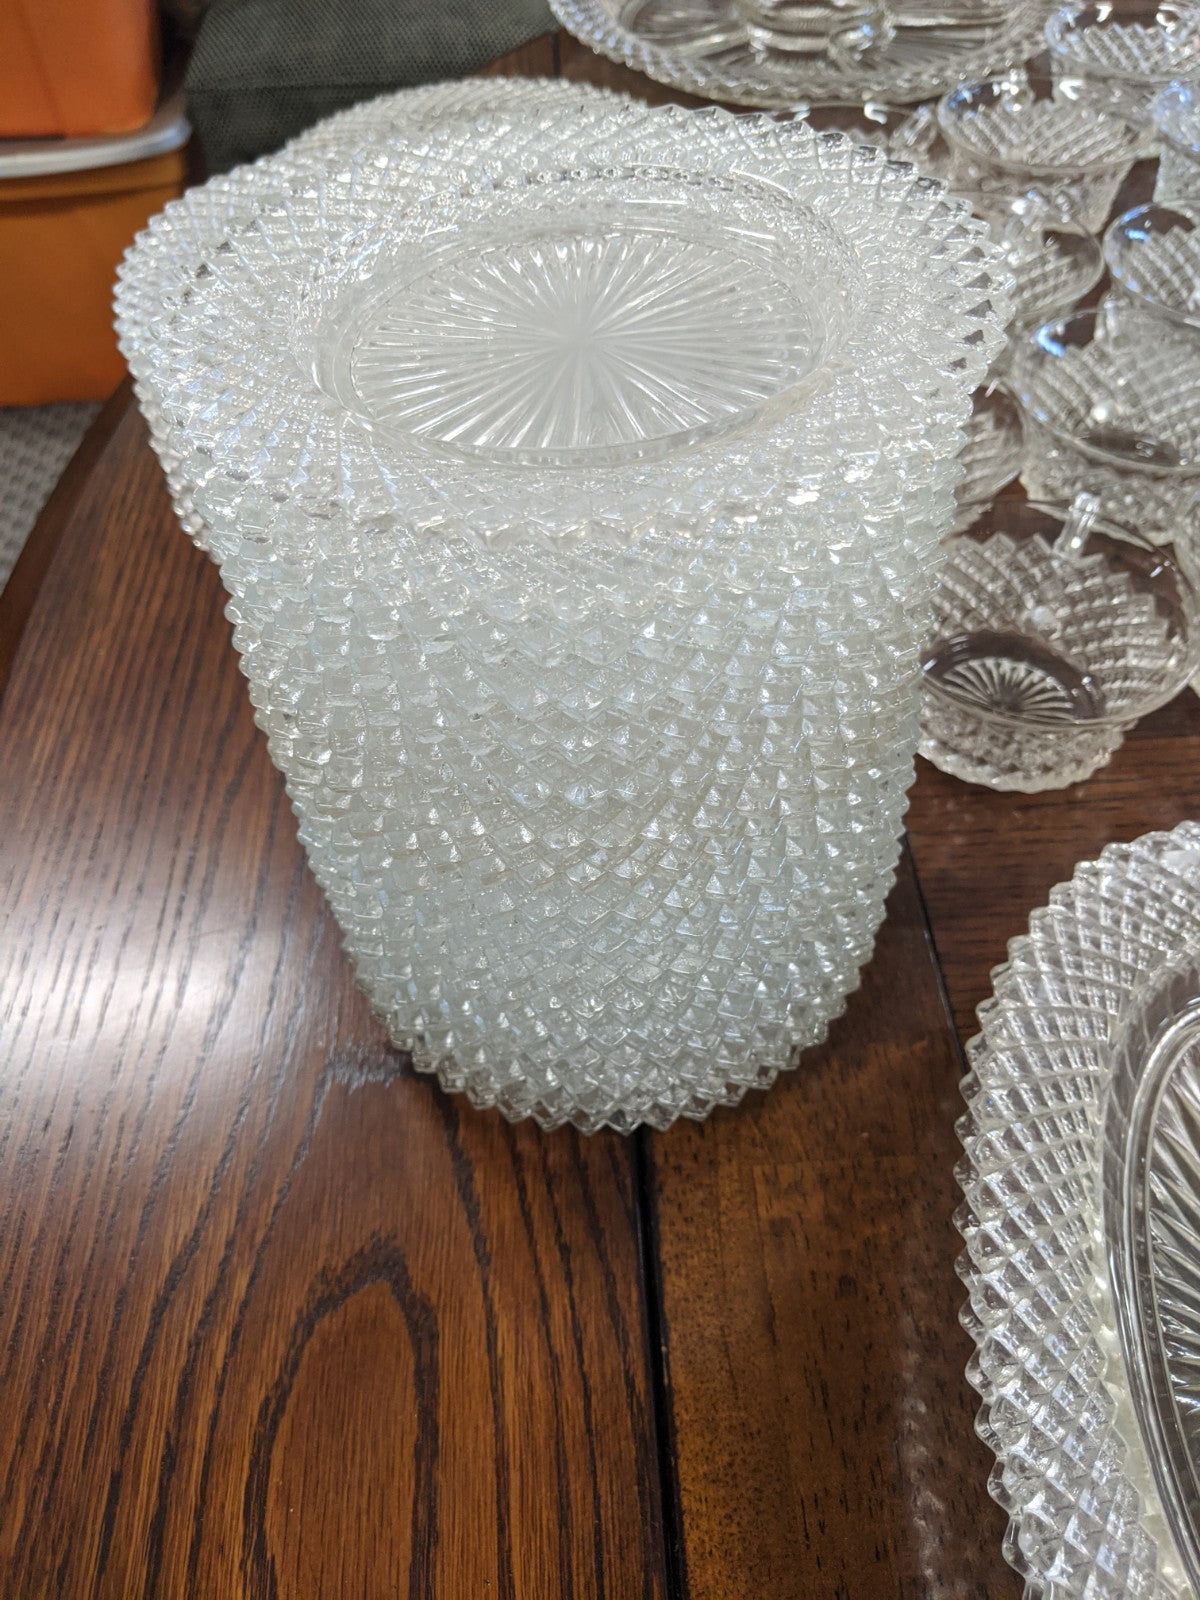 Vintage Glass Star-pattern partial dinner service, 60 pcs